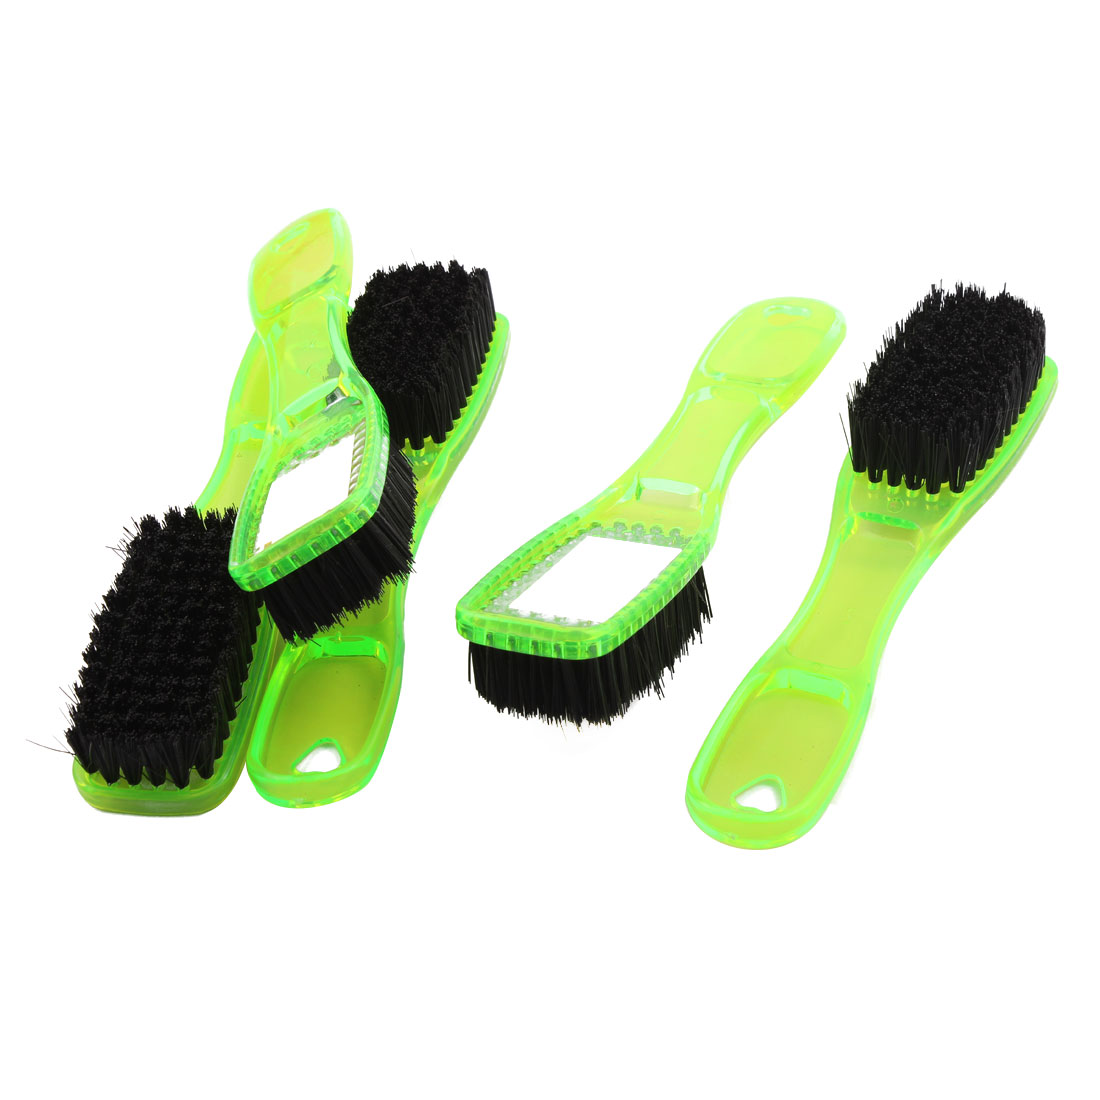 Household Bathroom Clothes Shoes Floor Scrub Washing Cleaning Brush 5 Pcs